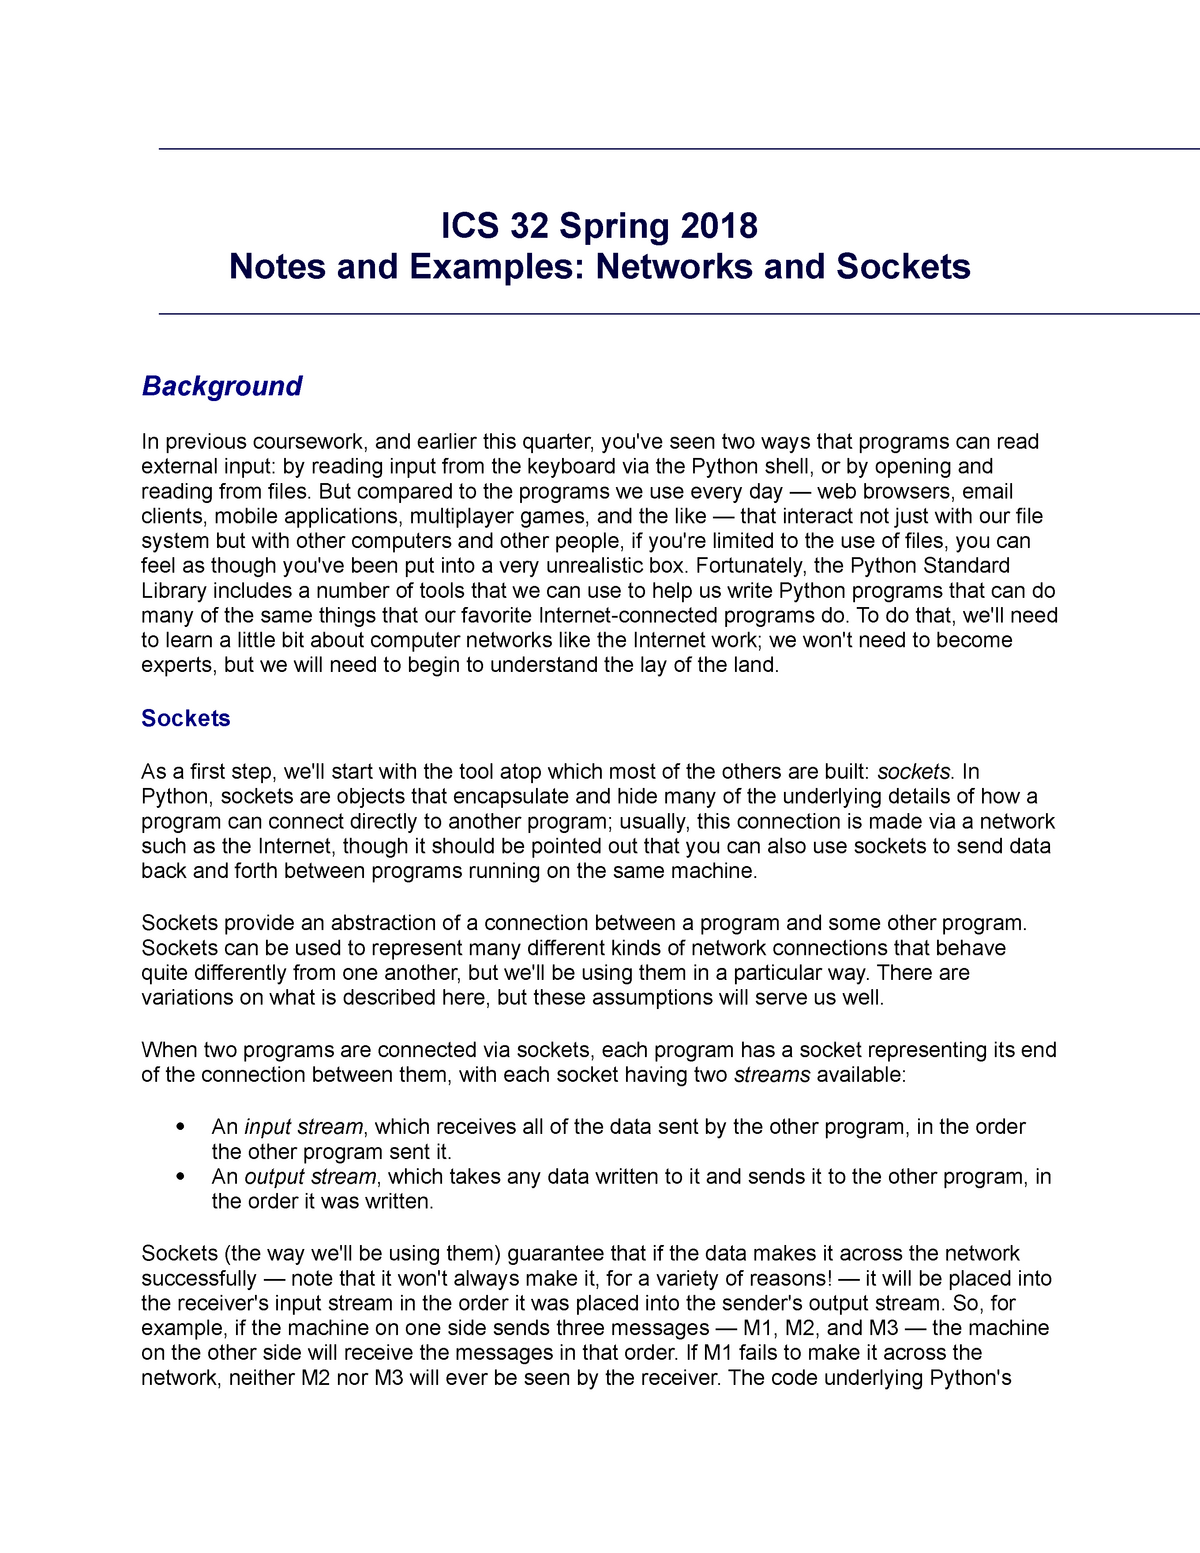 ICS 32 - 4:12 - Networks and Sockets - ICS 32: Into to